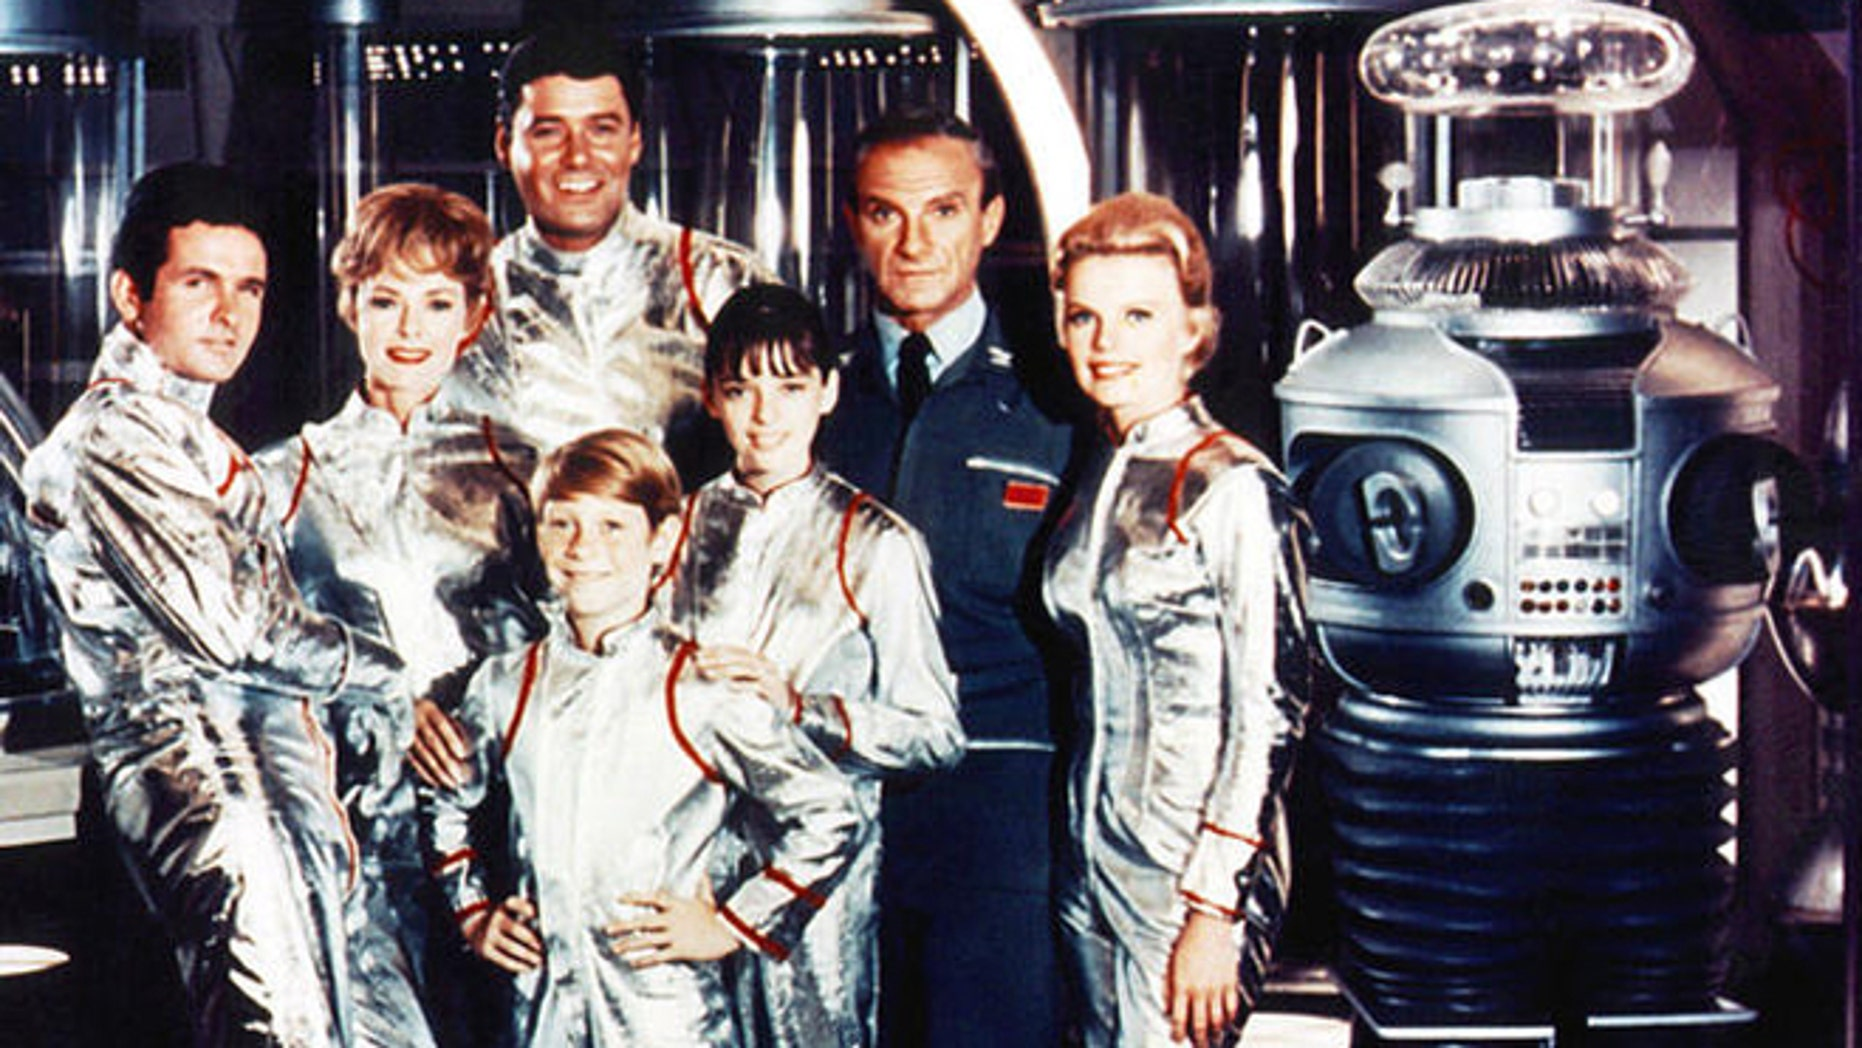 'Lost in Space' cast.